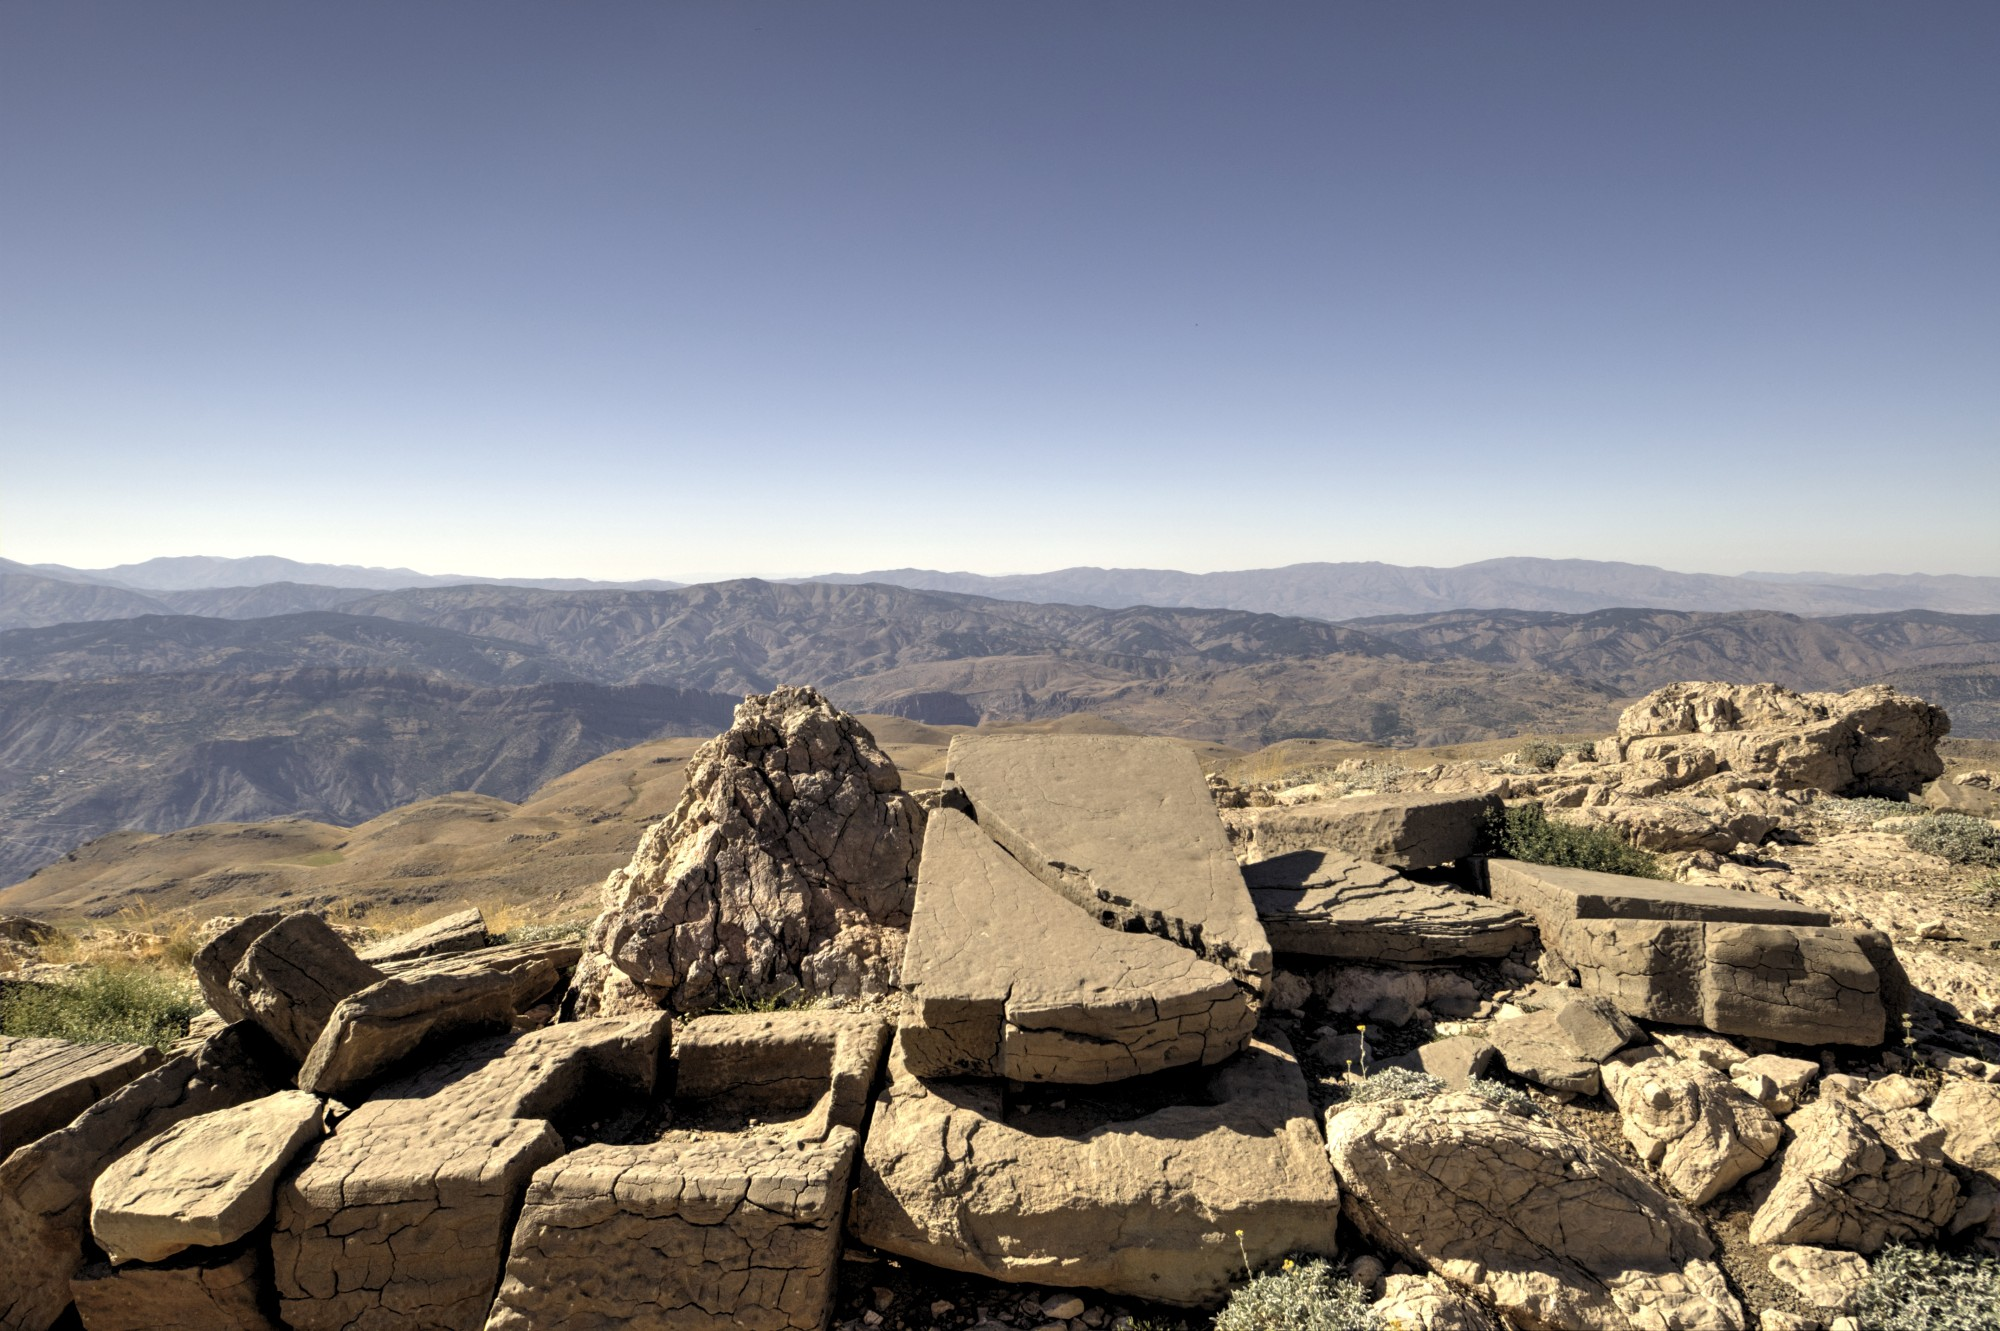 North Terrace on Mount Nemrut